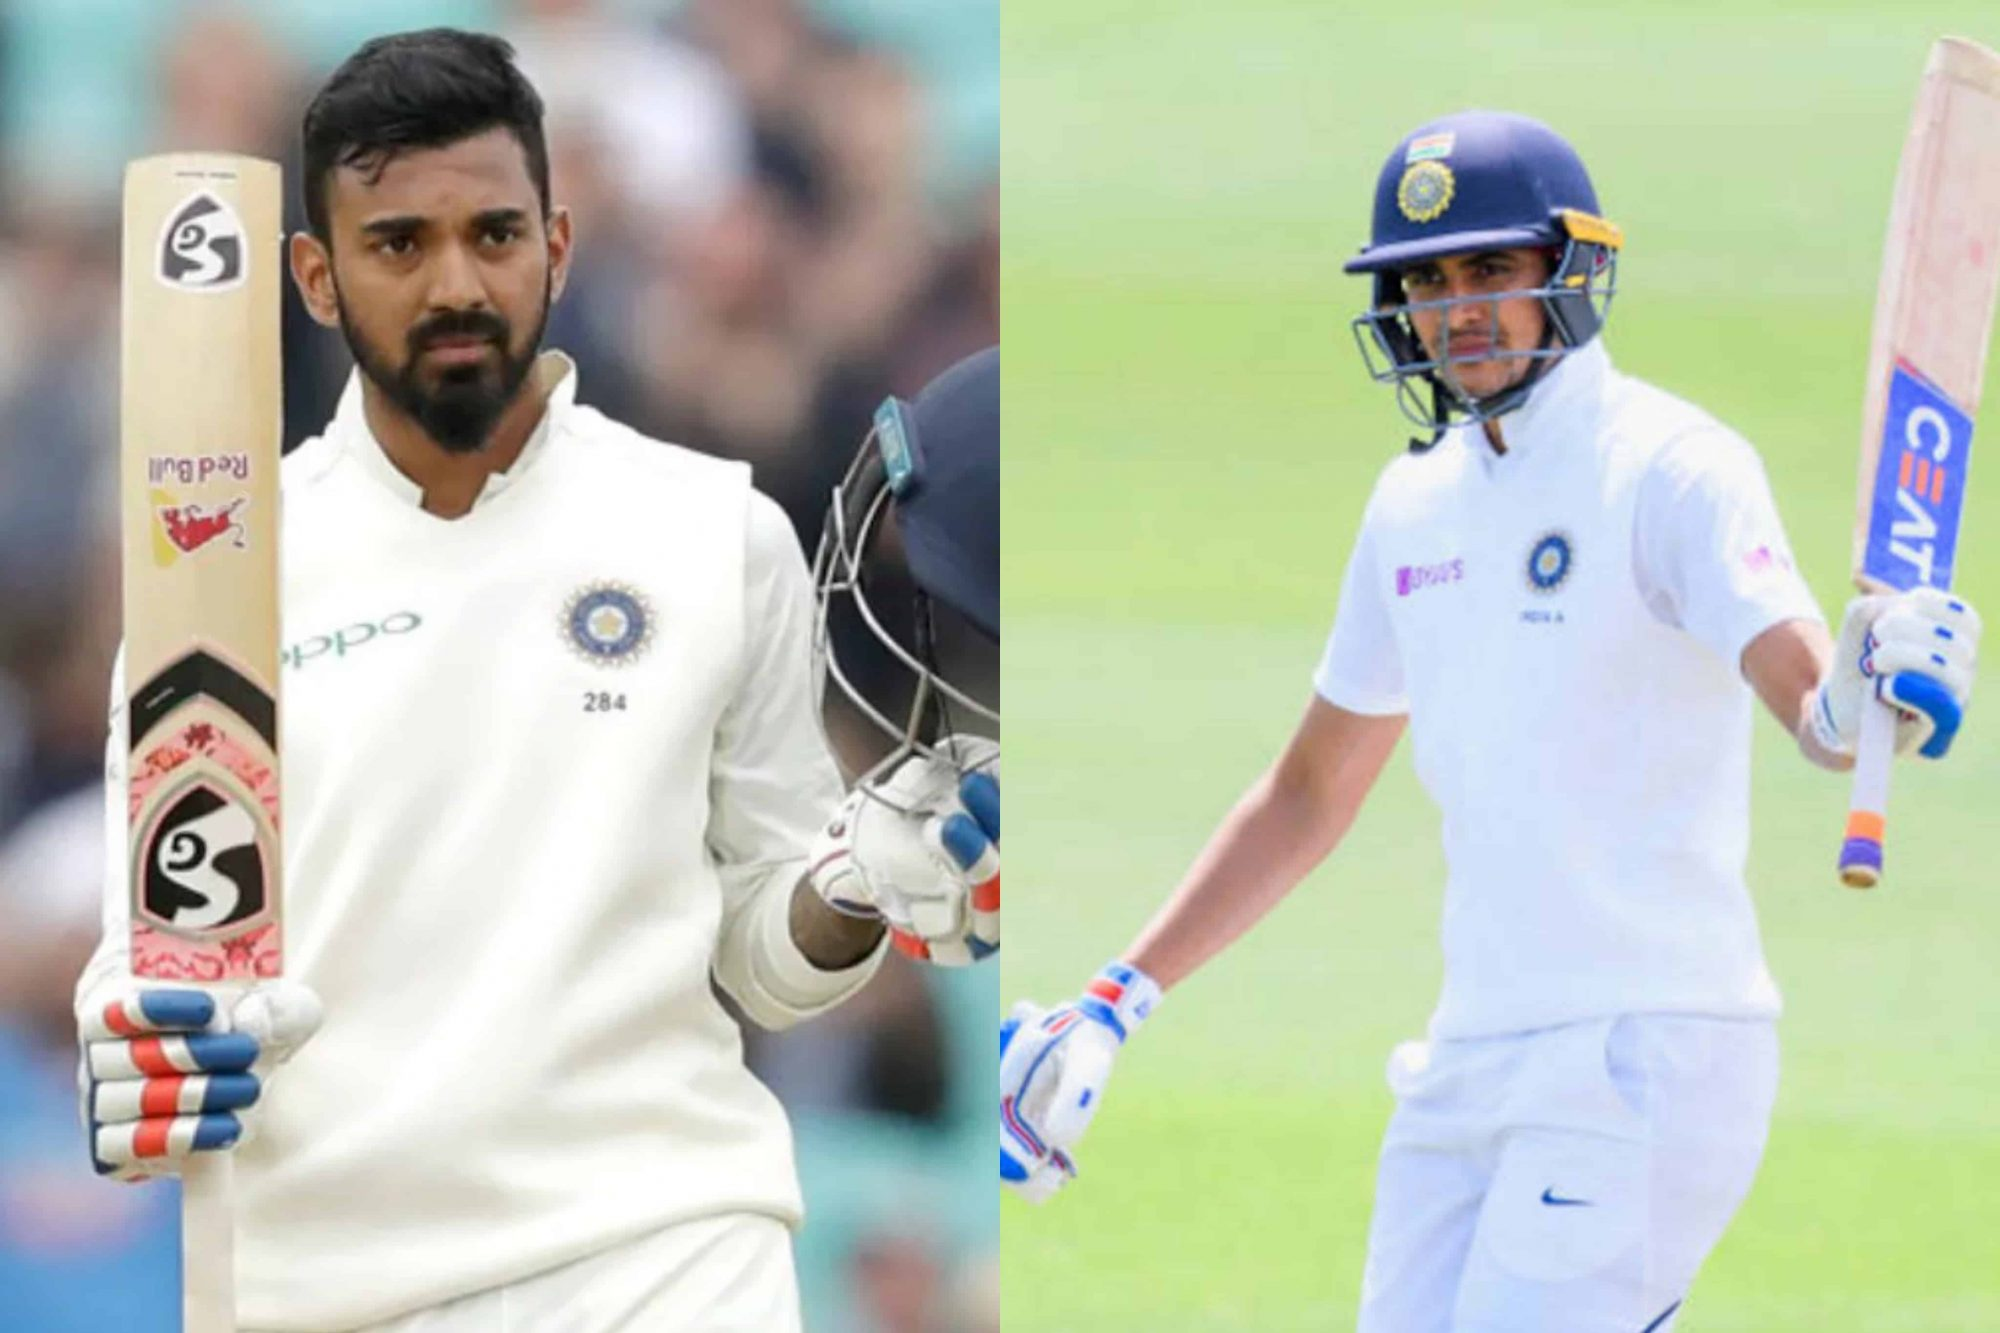 KL Rahul Or Shubman Gill - Big Dilemma For Team India Ahead Of The World Test Championship Final